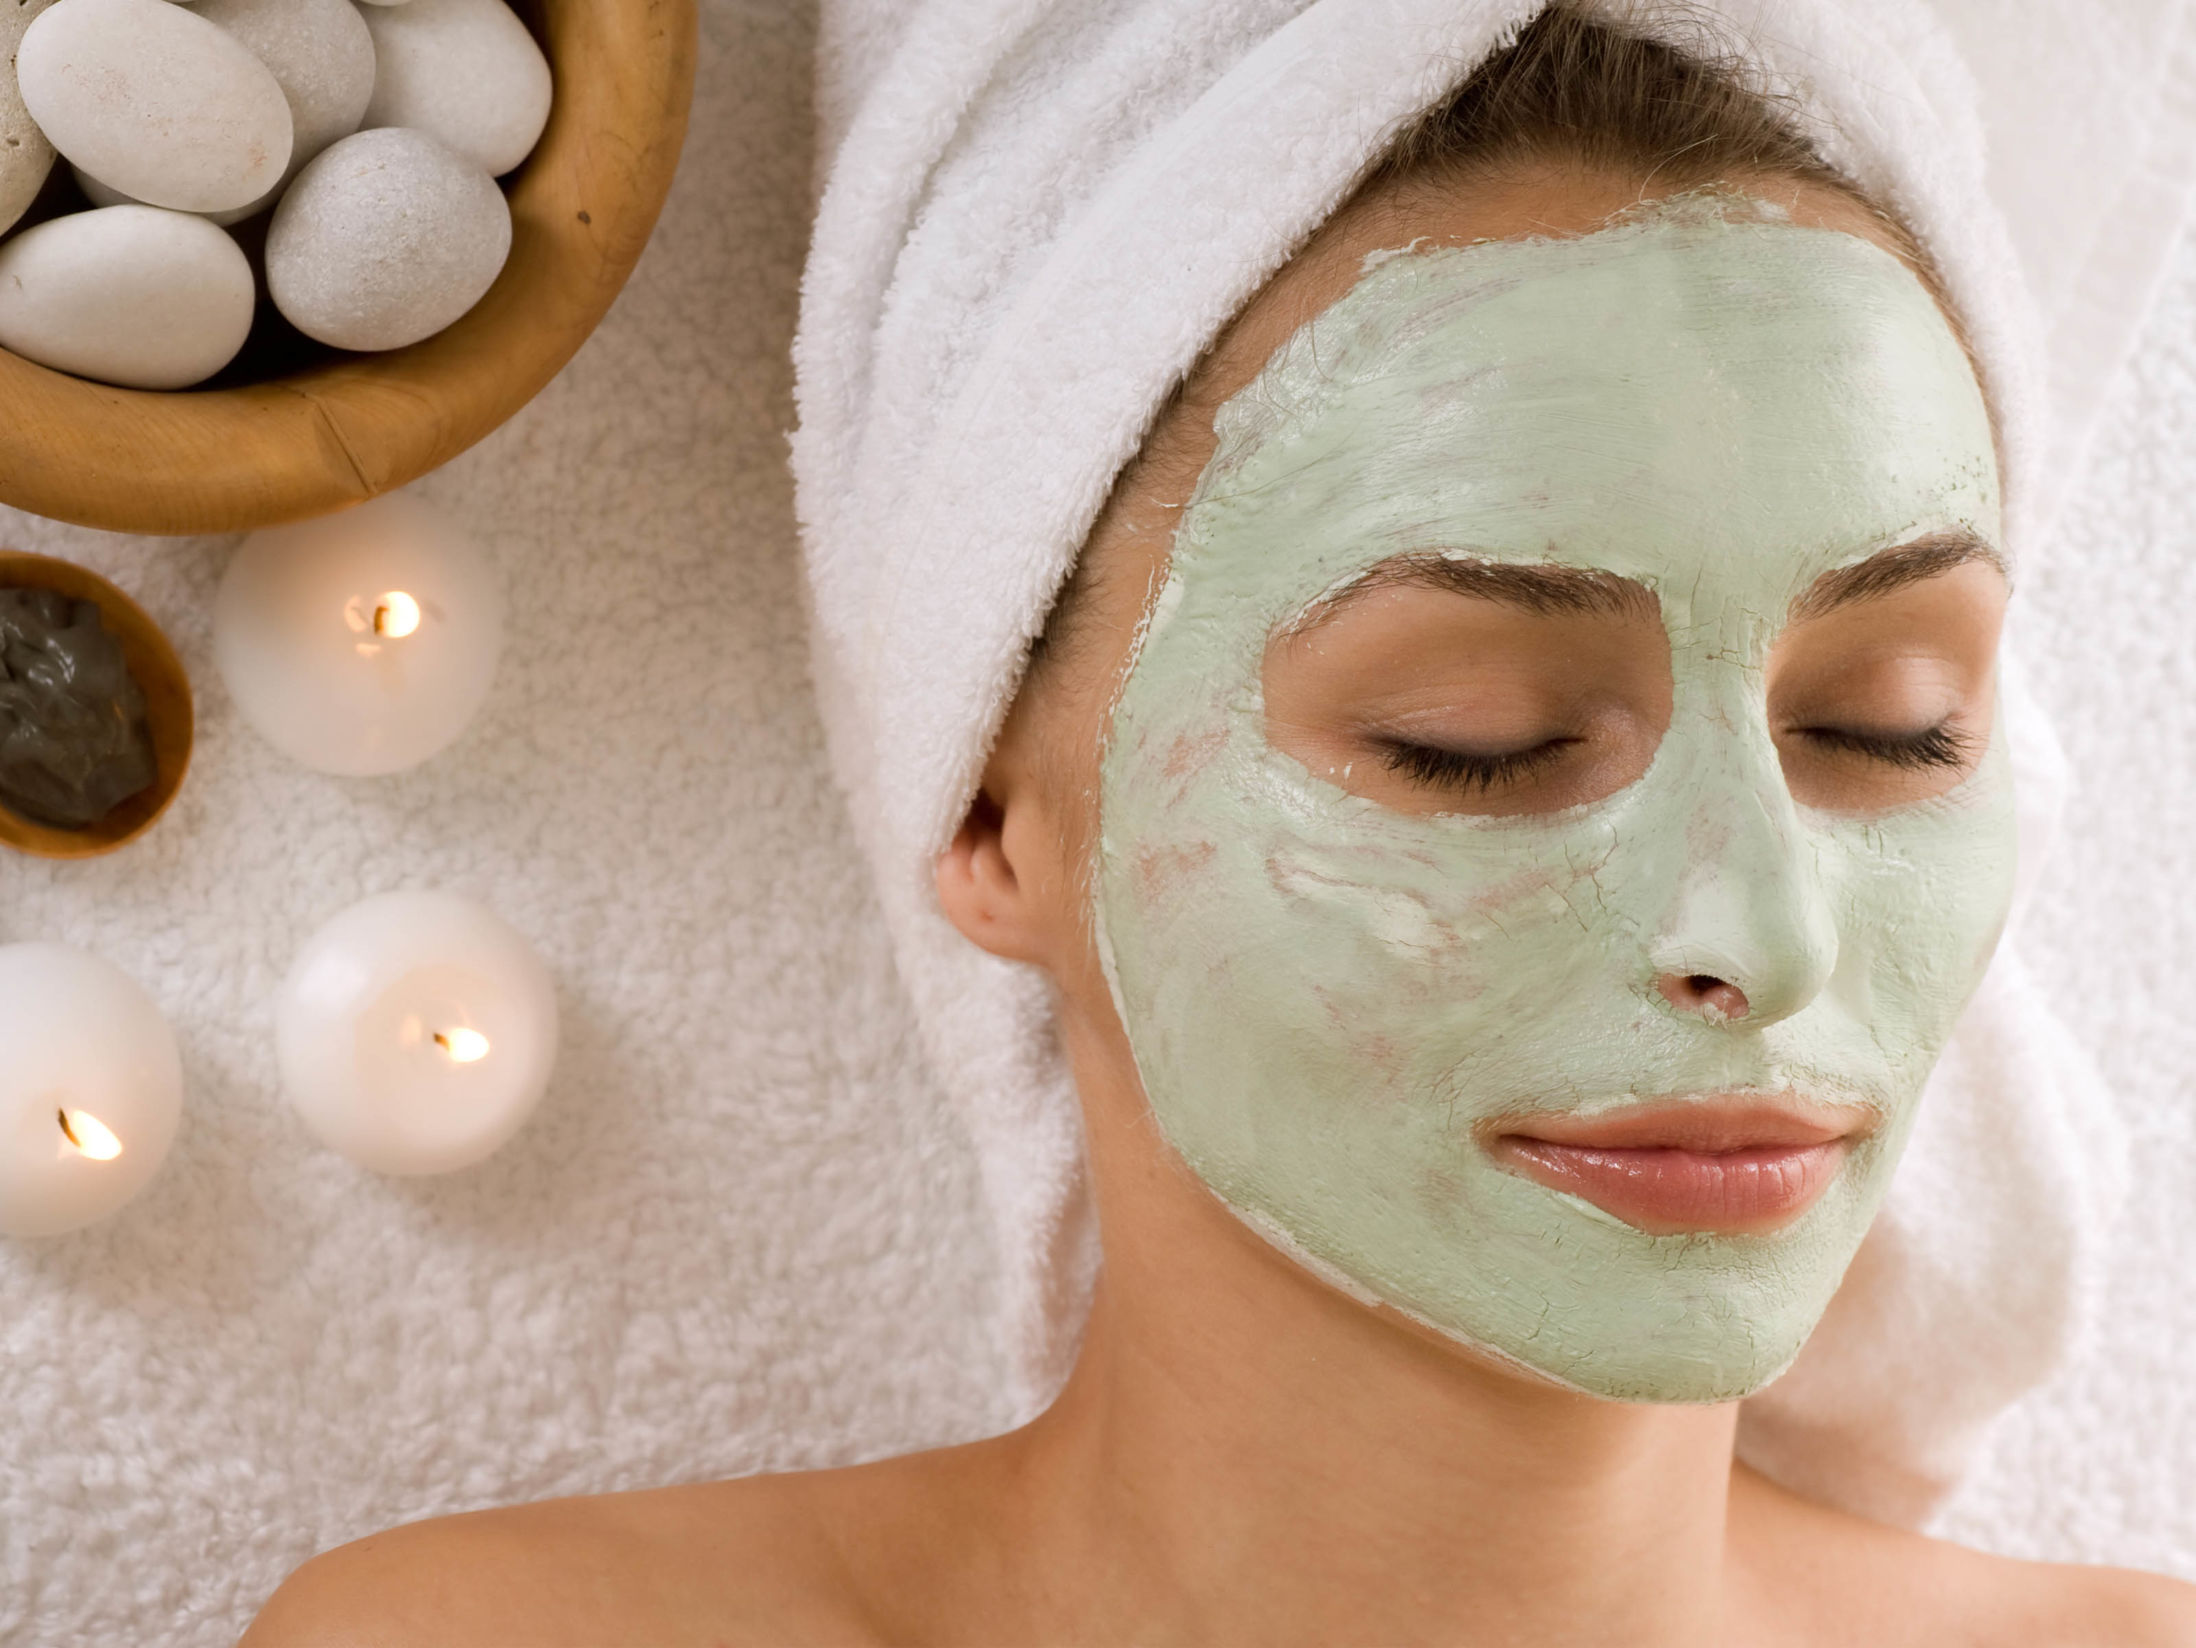 Hen Party Ideas for Mixed Ages - Spa Pamper Day